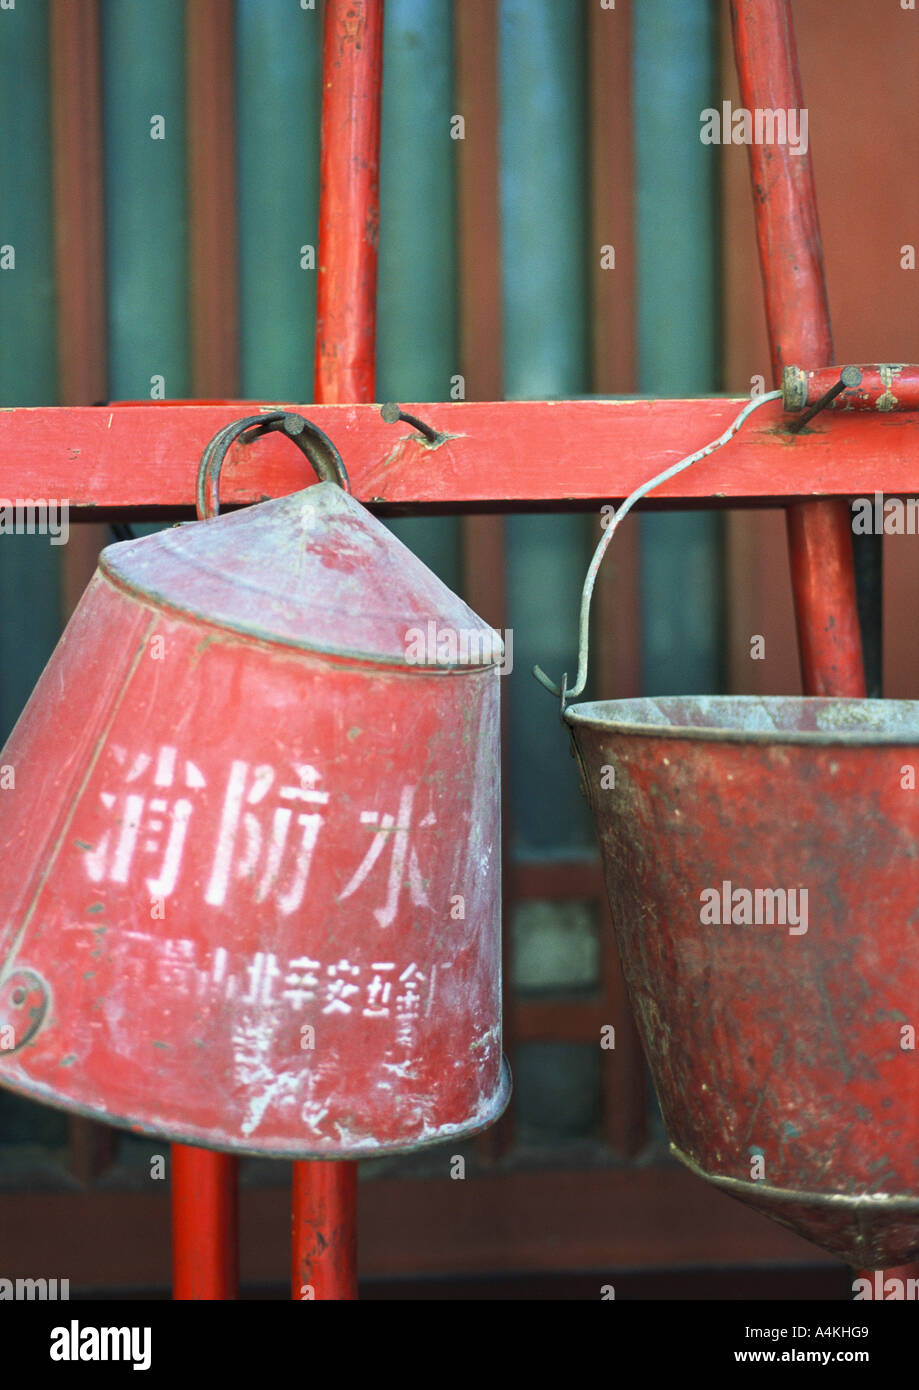 China, firefighting bucket - Stock Image